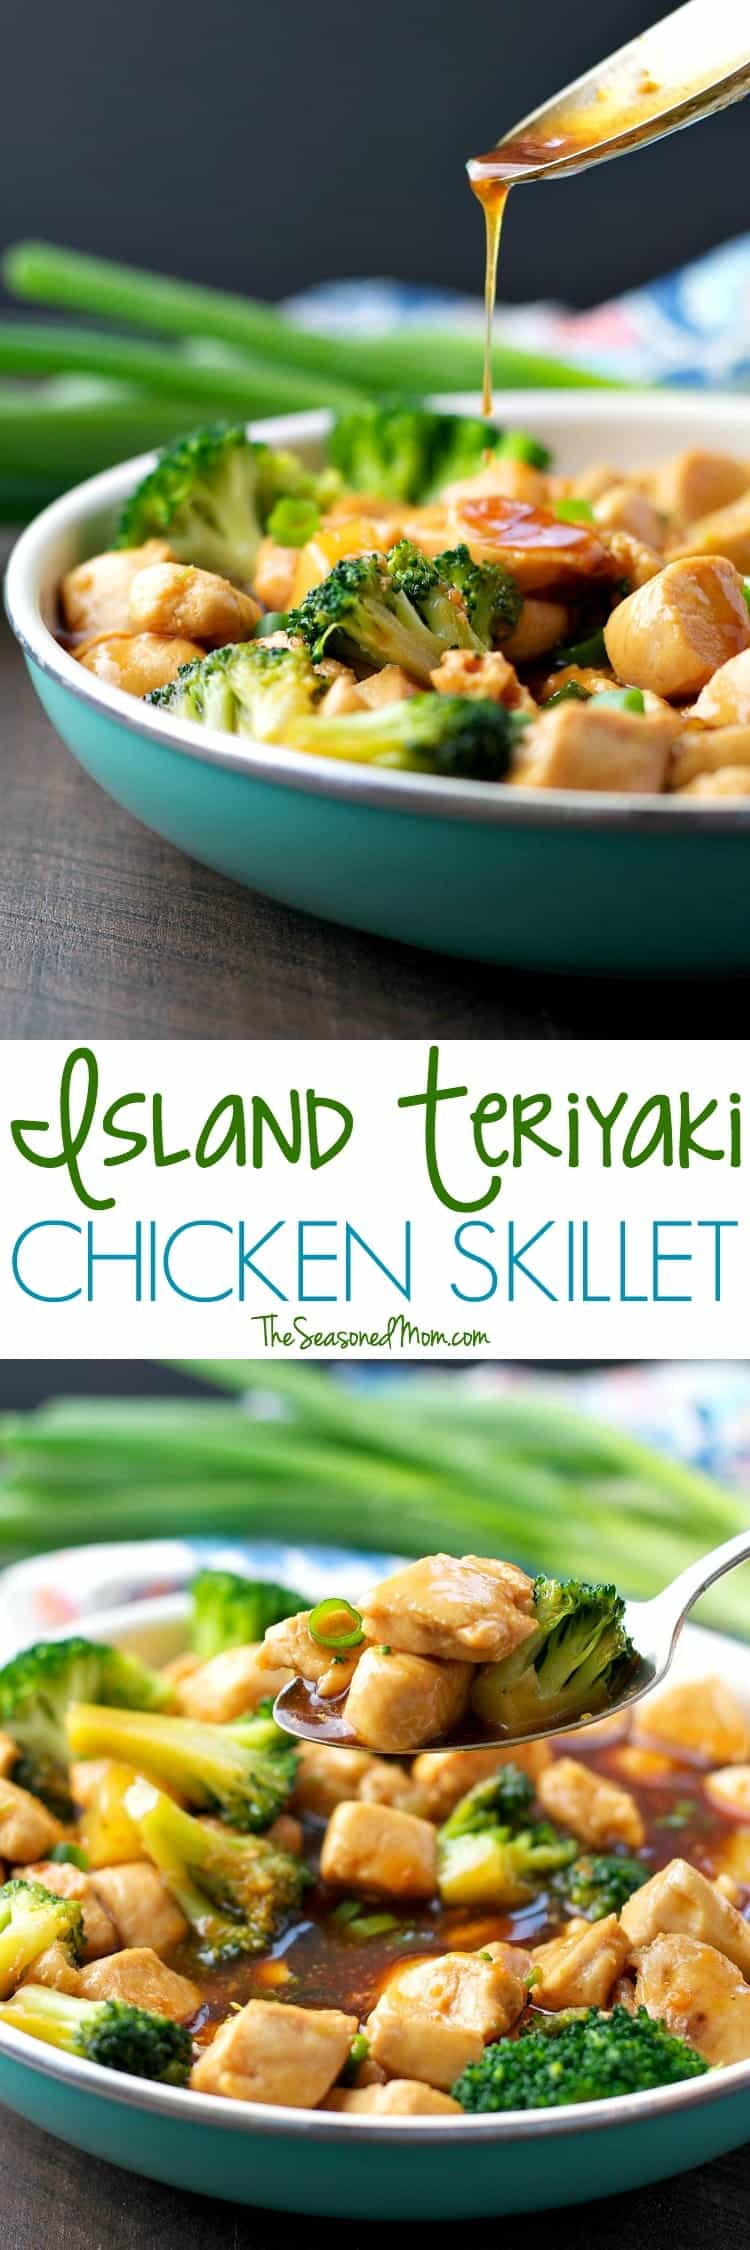 This healthy dinner comes together in about 20 minutes with just a few simple ingredients! My Island Teriyaki Chicken Skillet is a clean eating meal that's less than 300 calories -- and the whole family loves it!